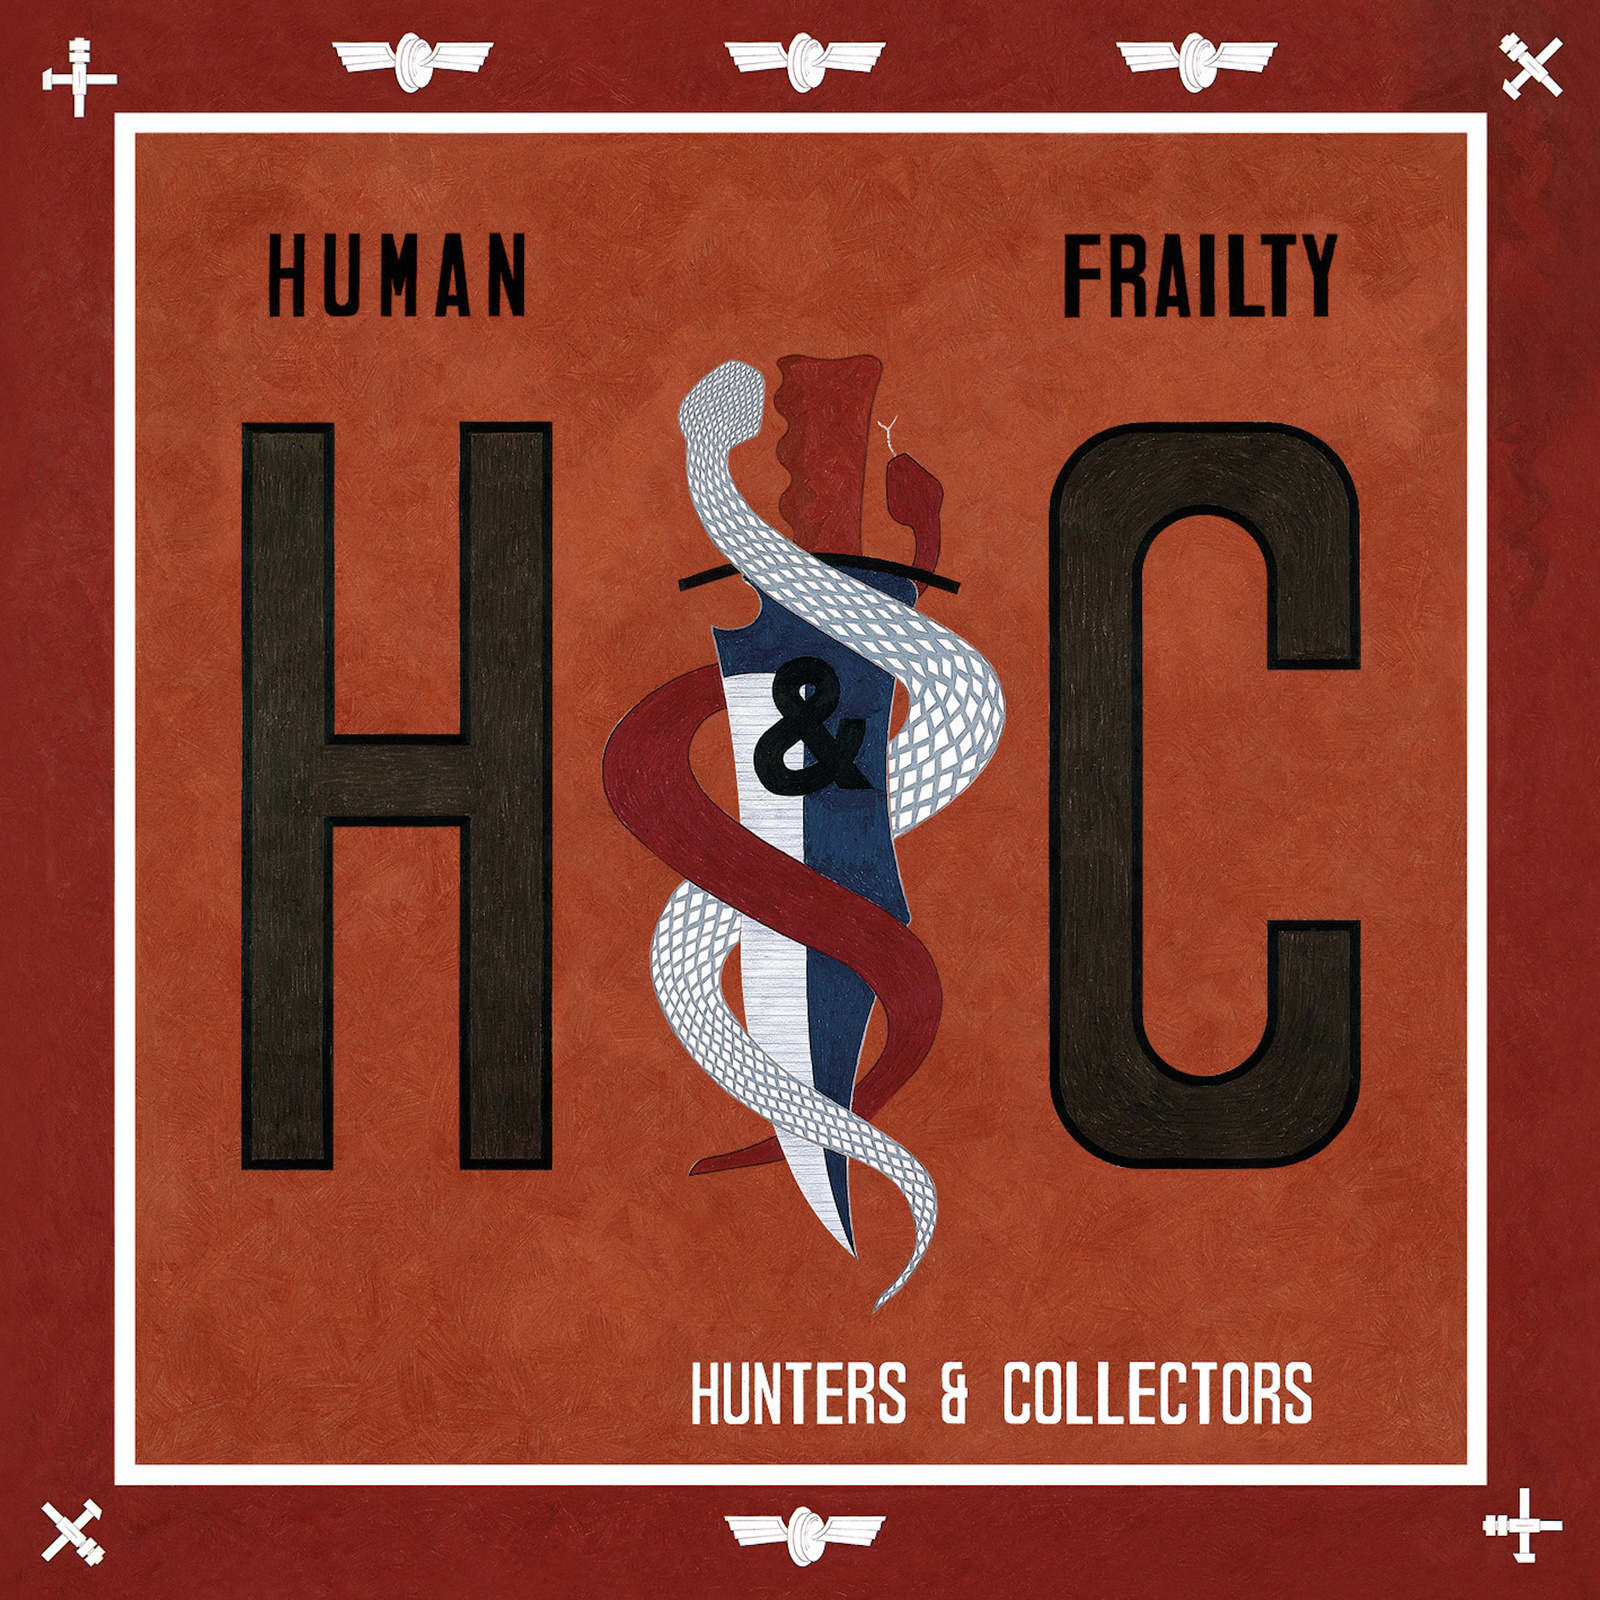 Human Frailty by Hunters & Collectors image